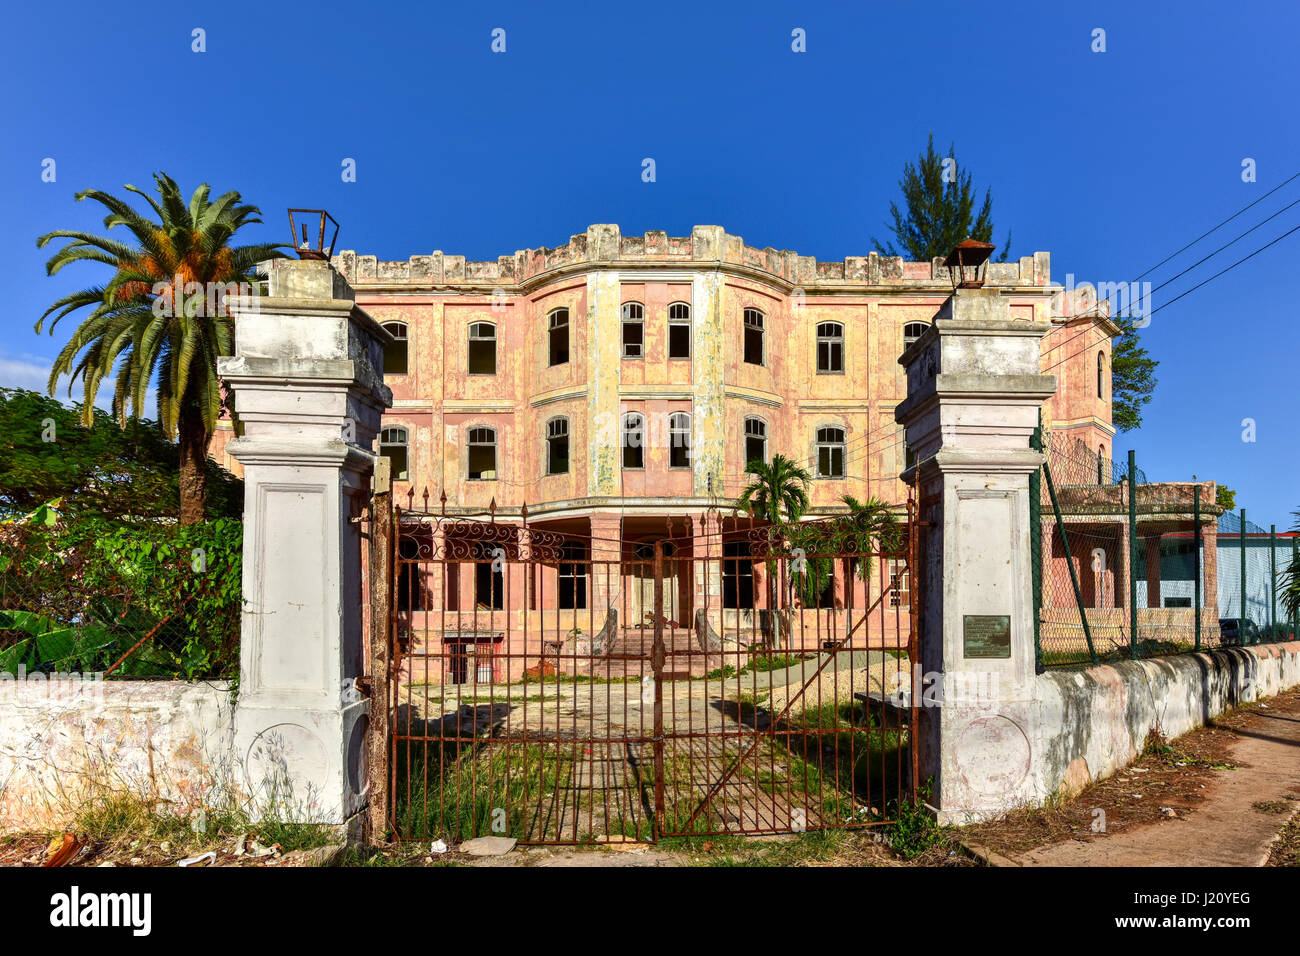 The Federation of Cuban Women (FMC) former building in Cojimar, Havana, Cuba. - Stock Image